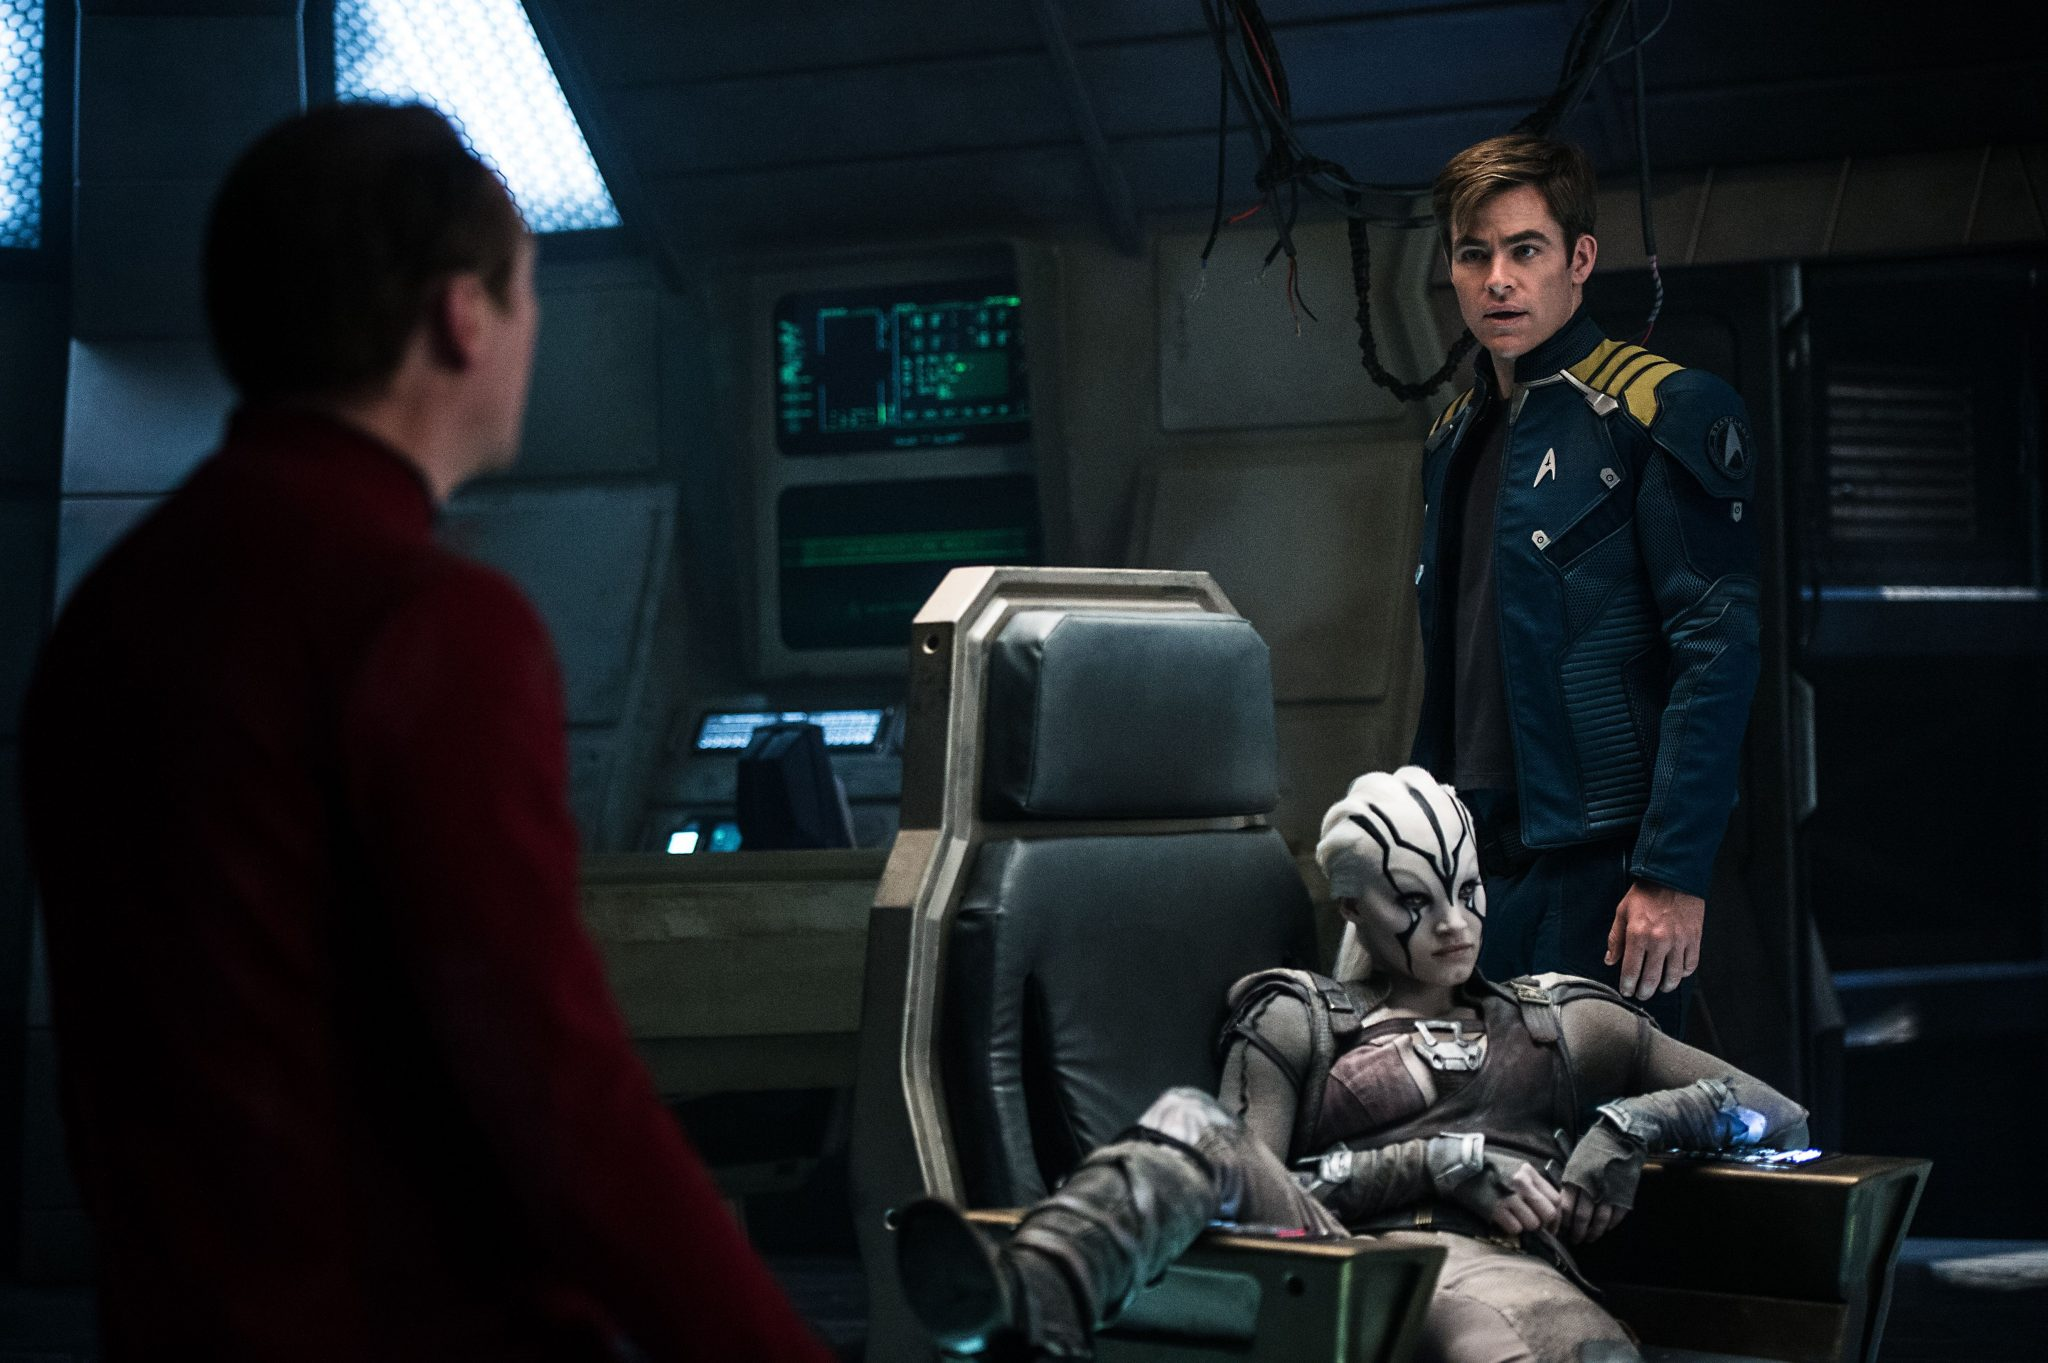 Review: 'Star Trek: Beyond' Is Short on Ideas, Big on Silly Action